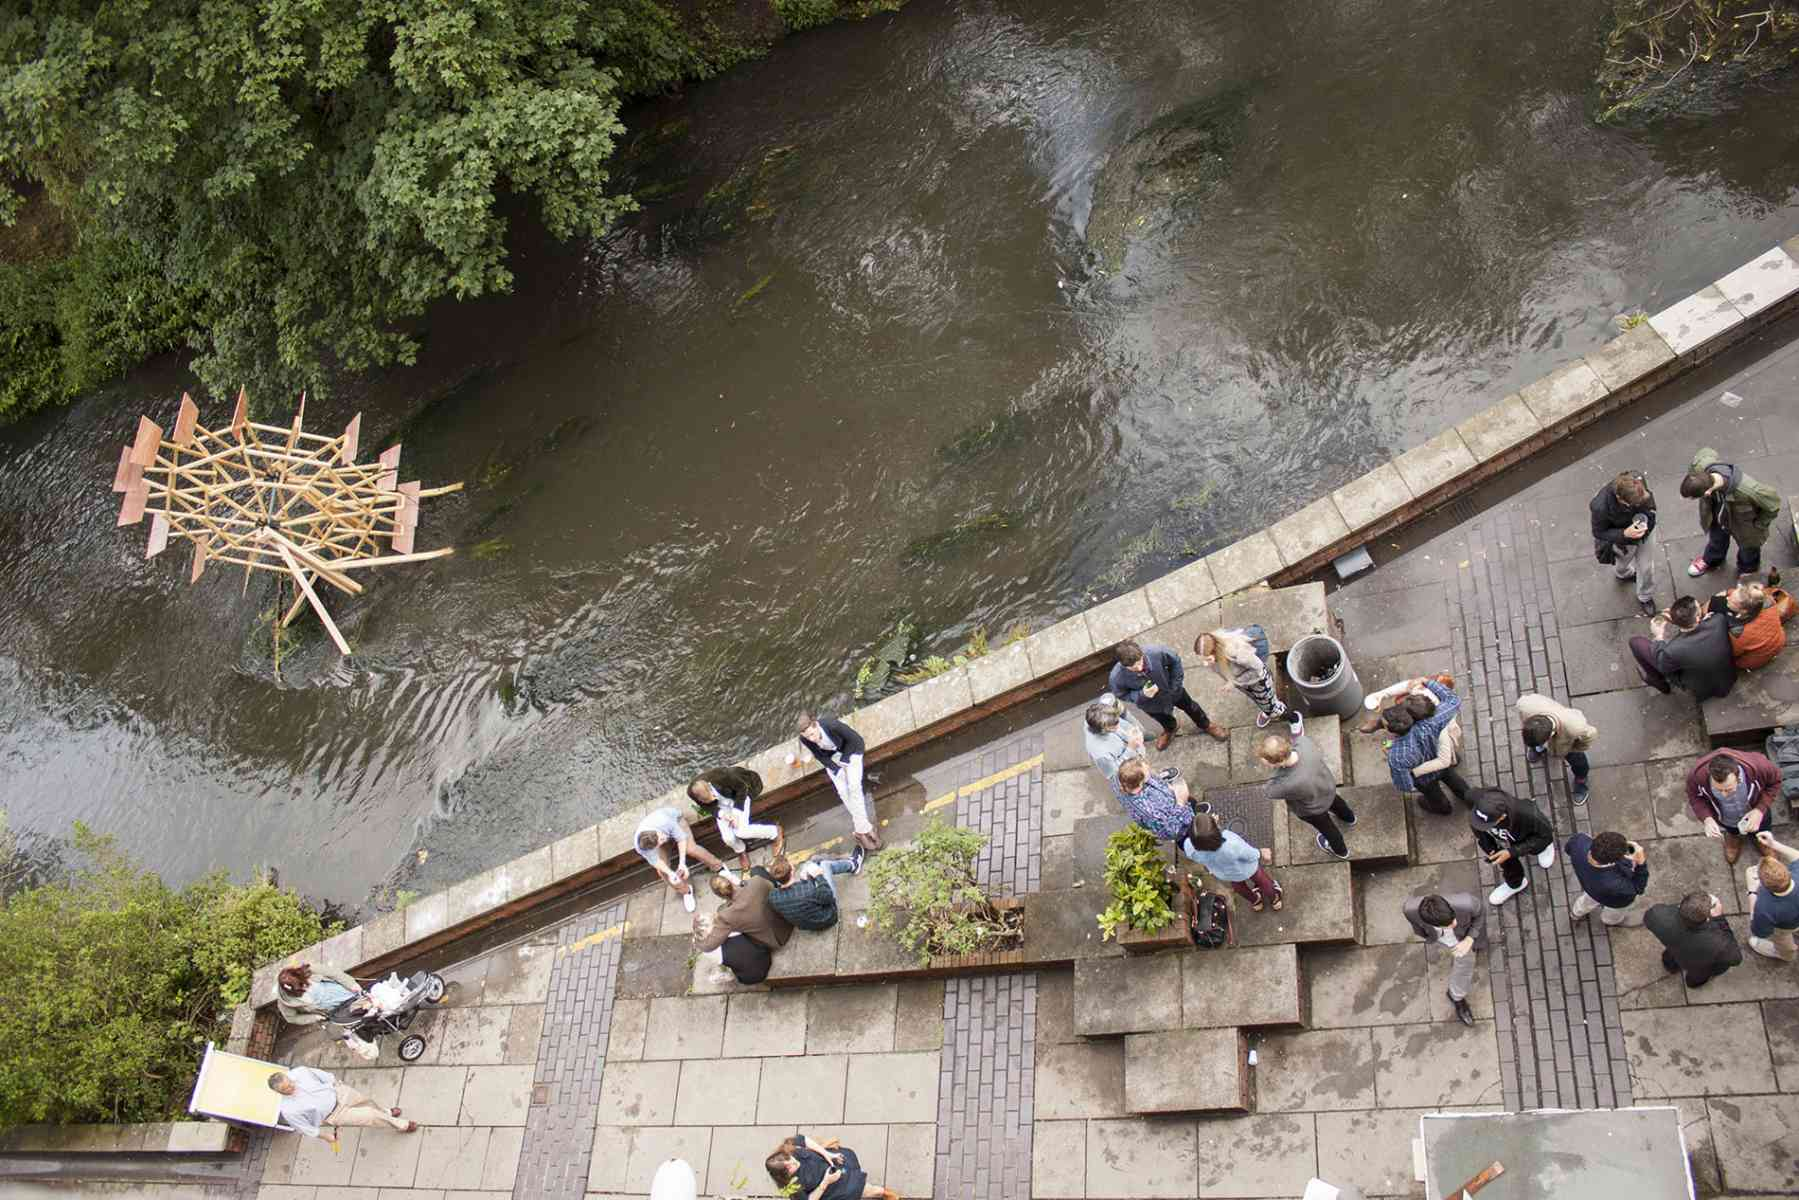 Live architecture project in situ in the Hogsmill River